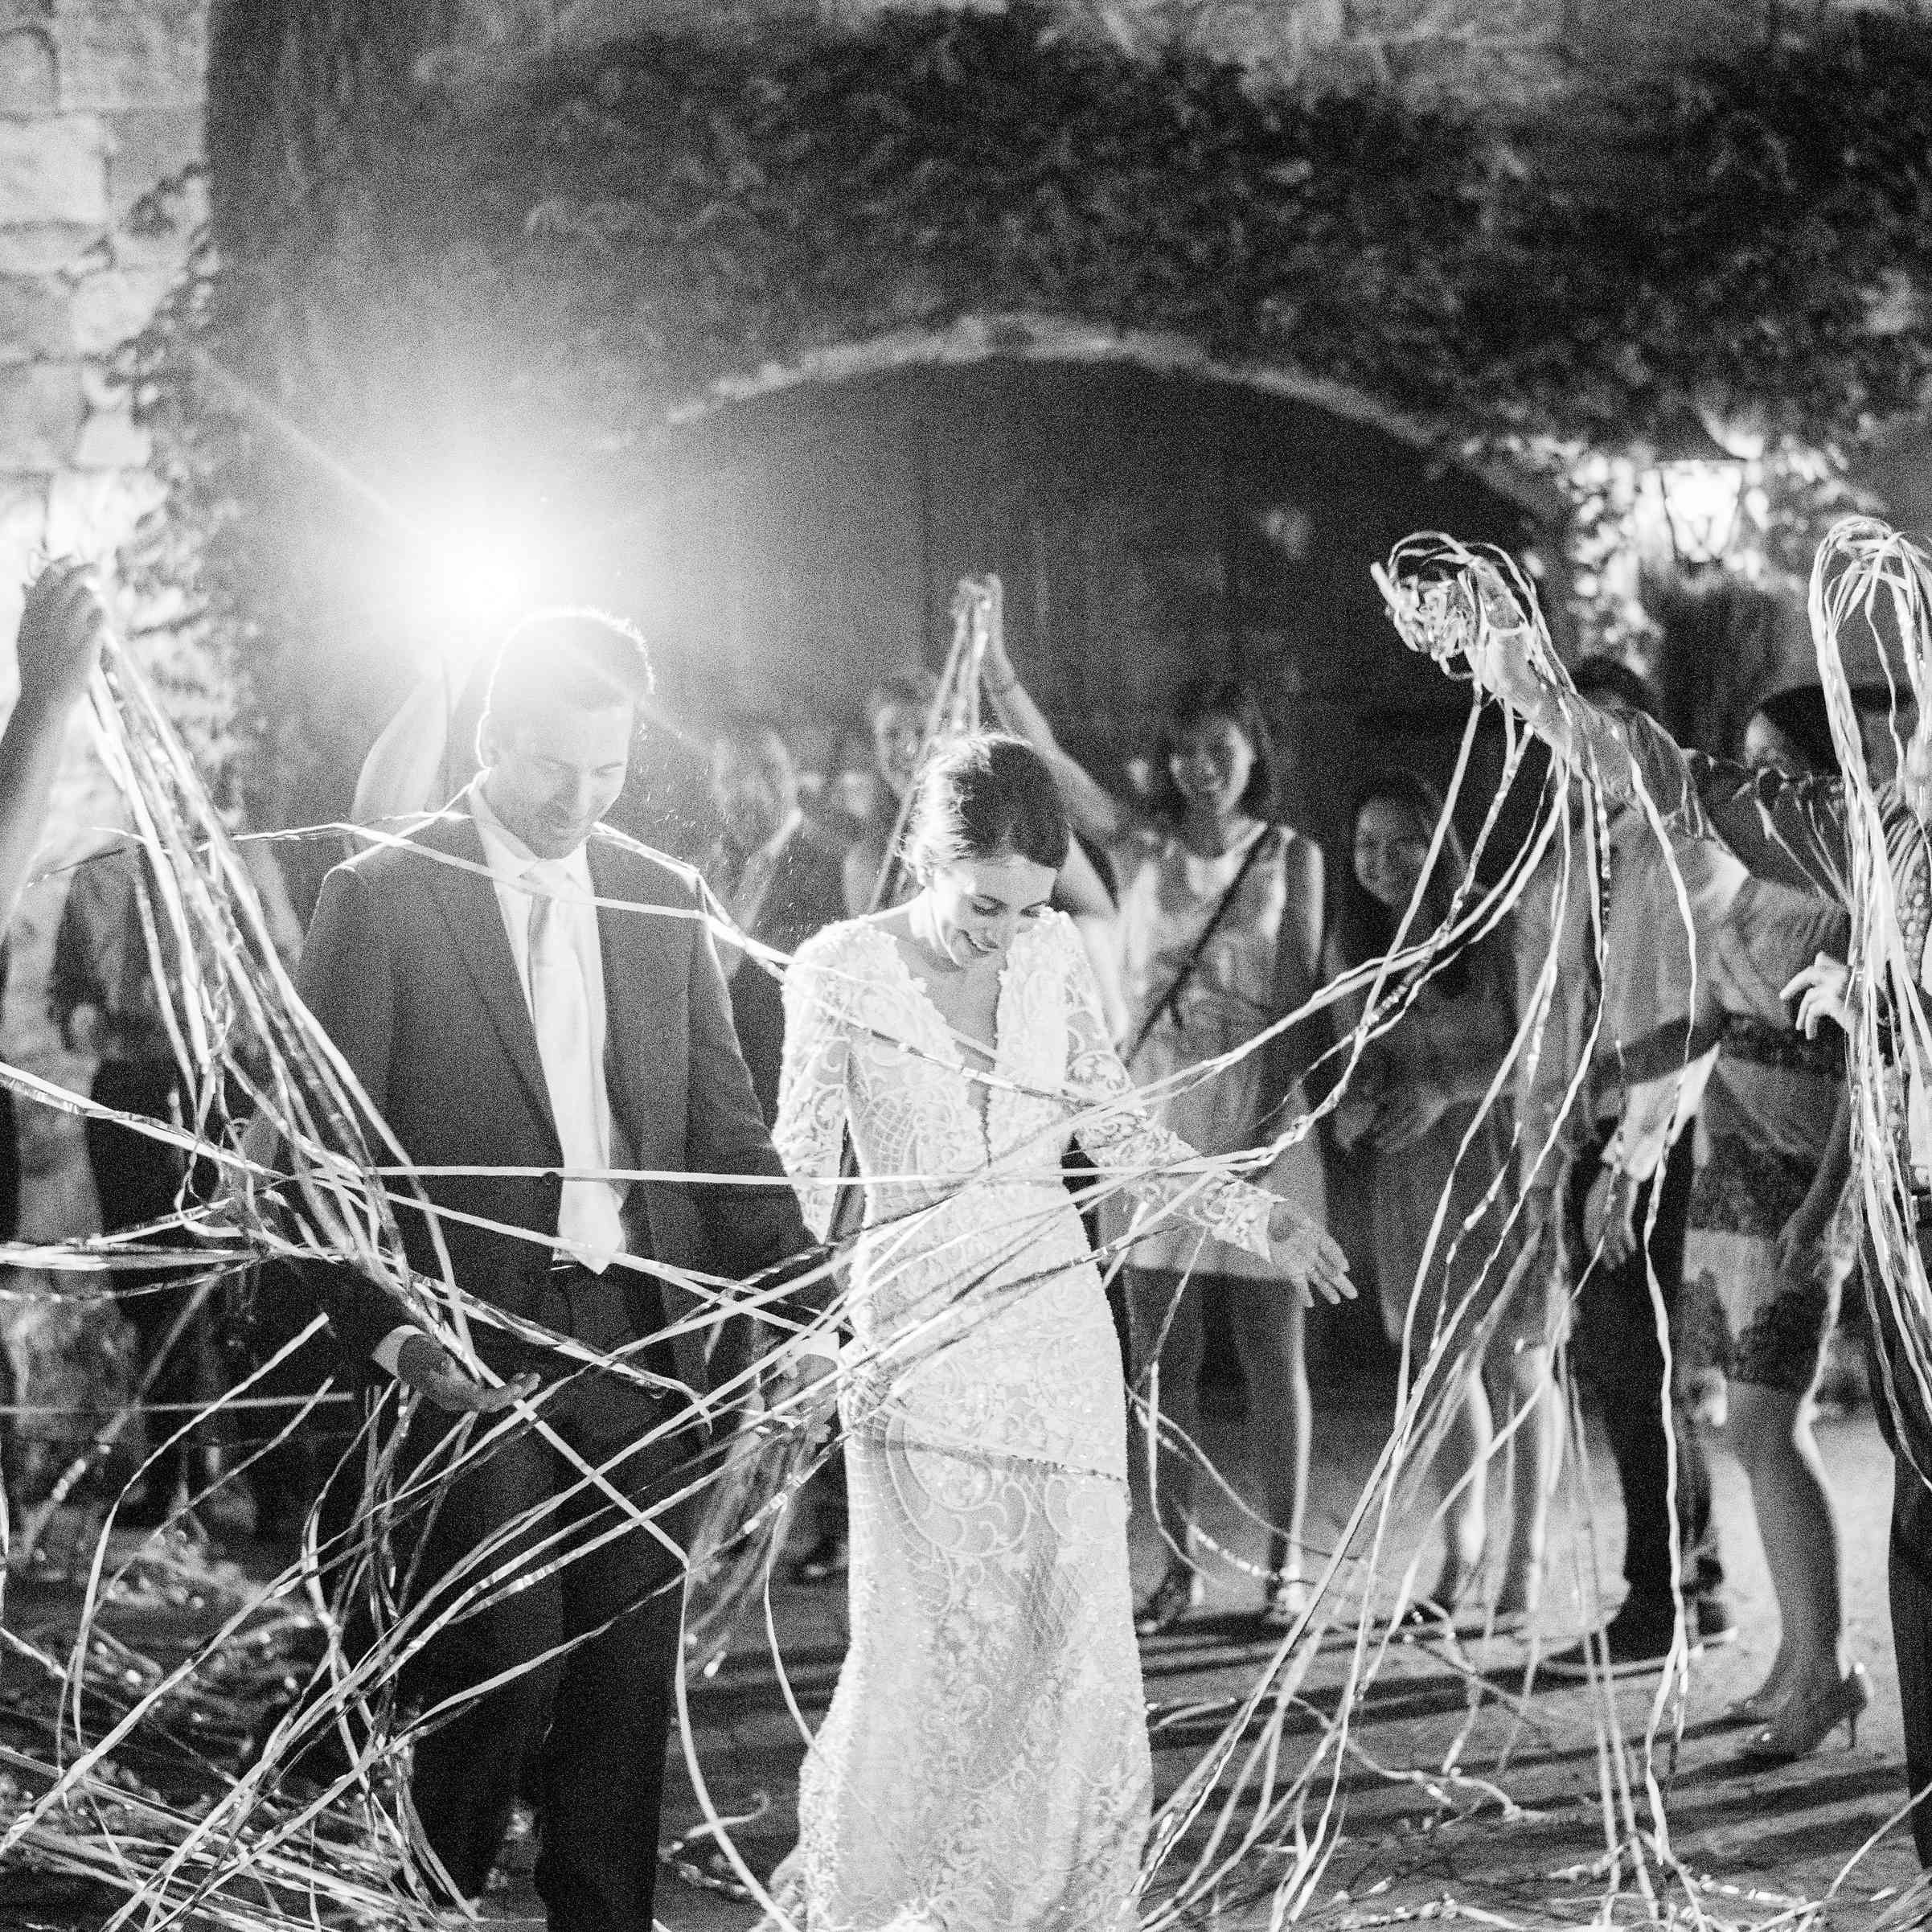 Bride and groom with streamers